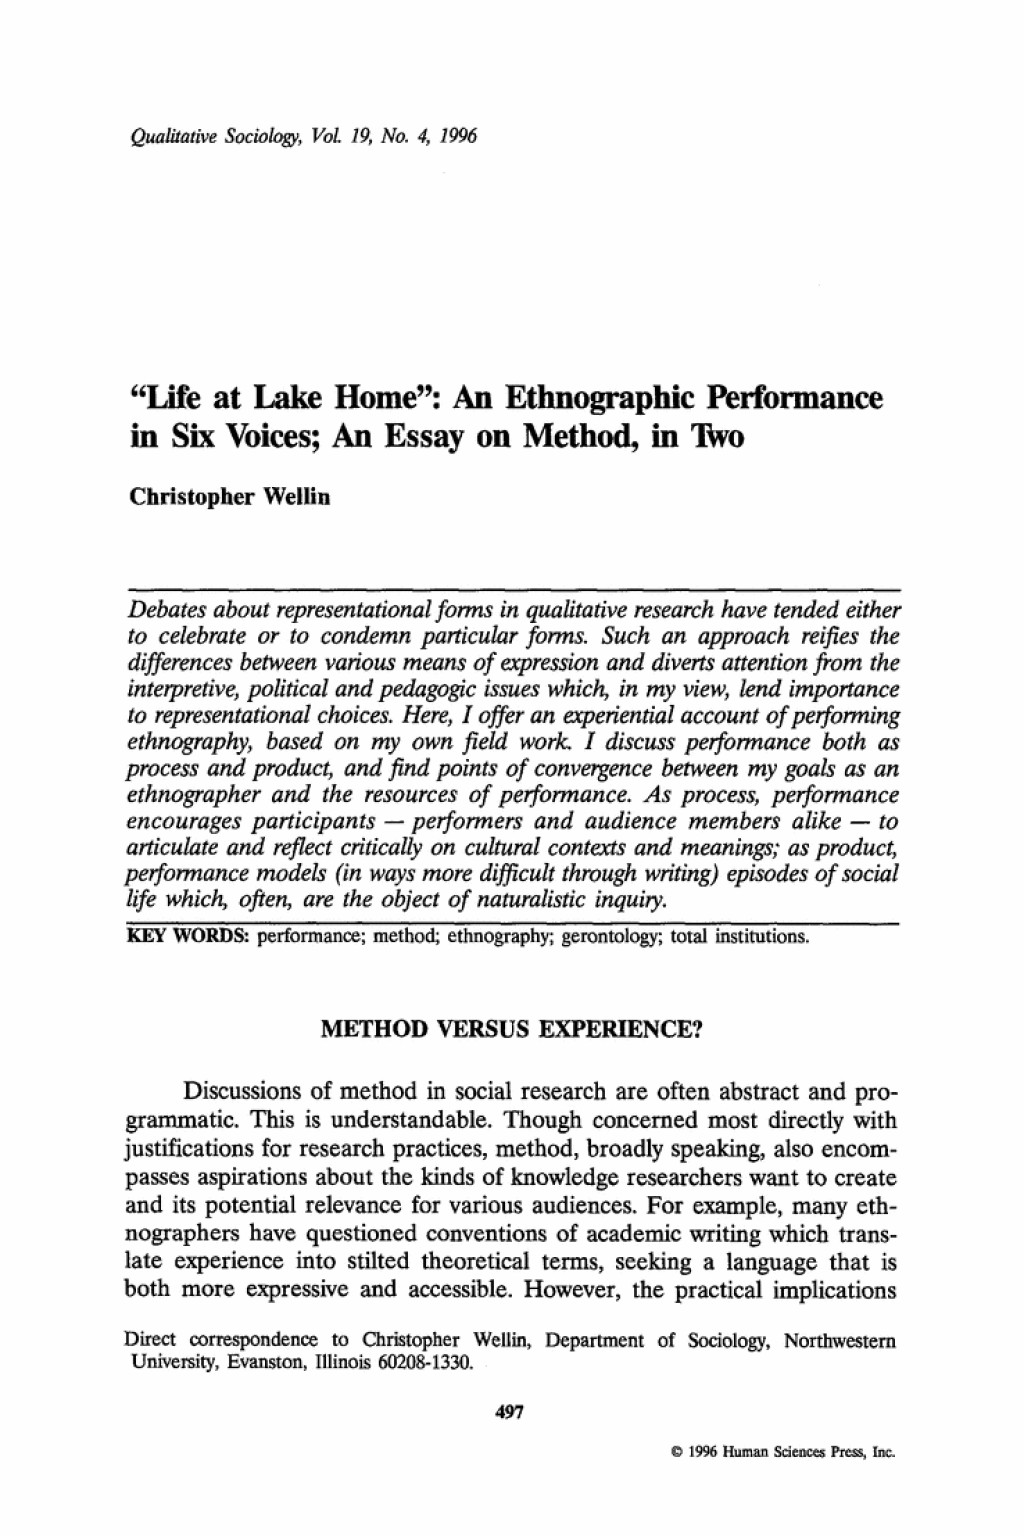 003 Ethnographic Essay Examples Example Profile Interview Of Editable Narrative Paper With Ethnogr Unique Micro Ethnography Large